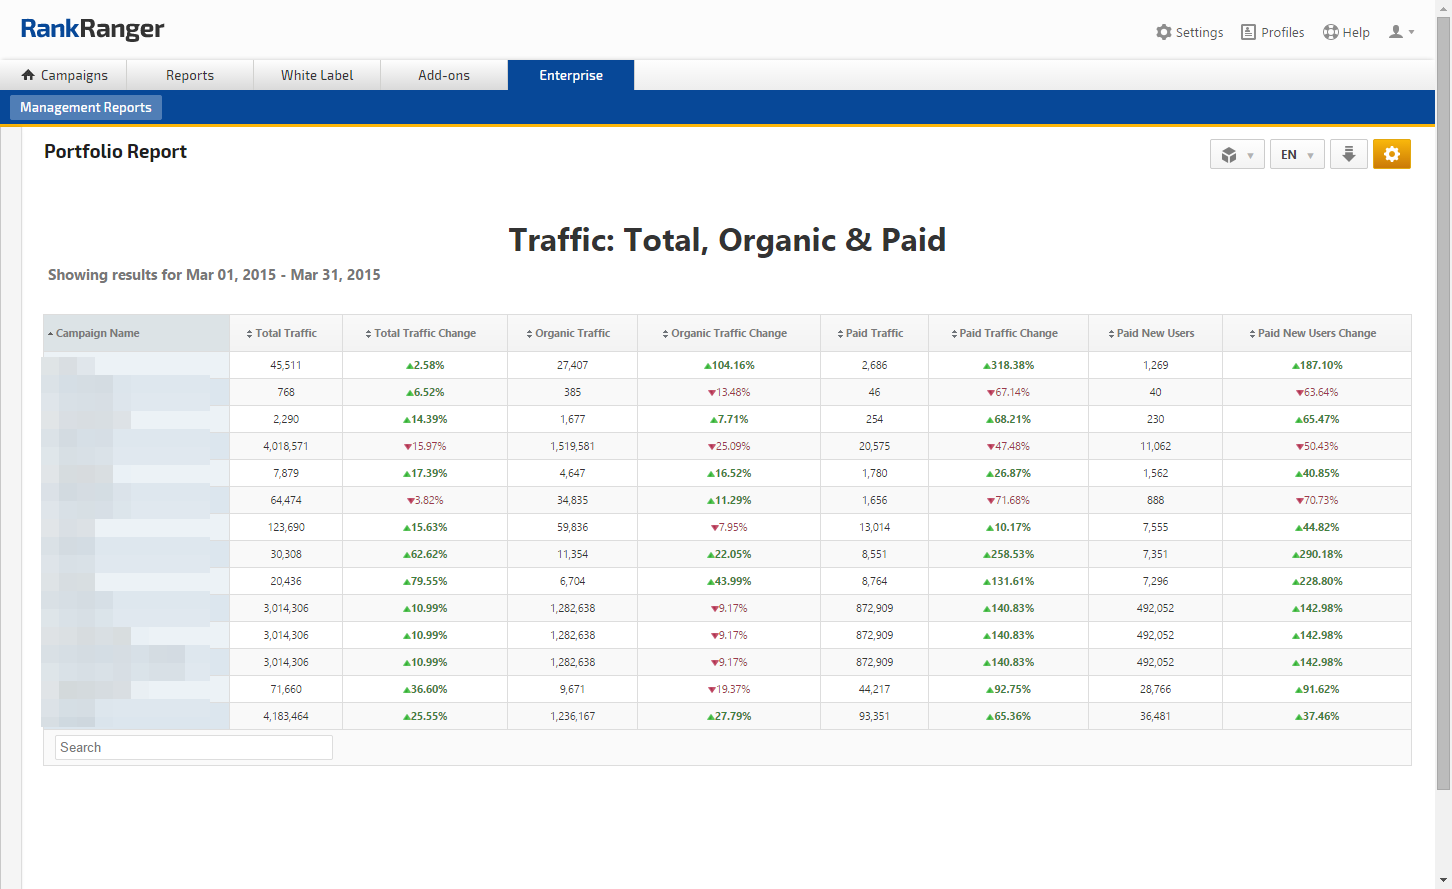 Portfolio Analytics Traffic Totals, Organic & Paid Comparison Report